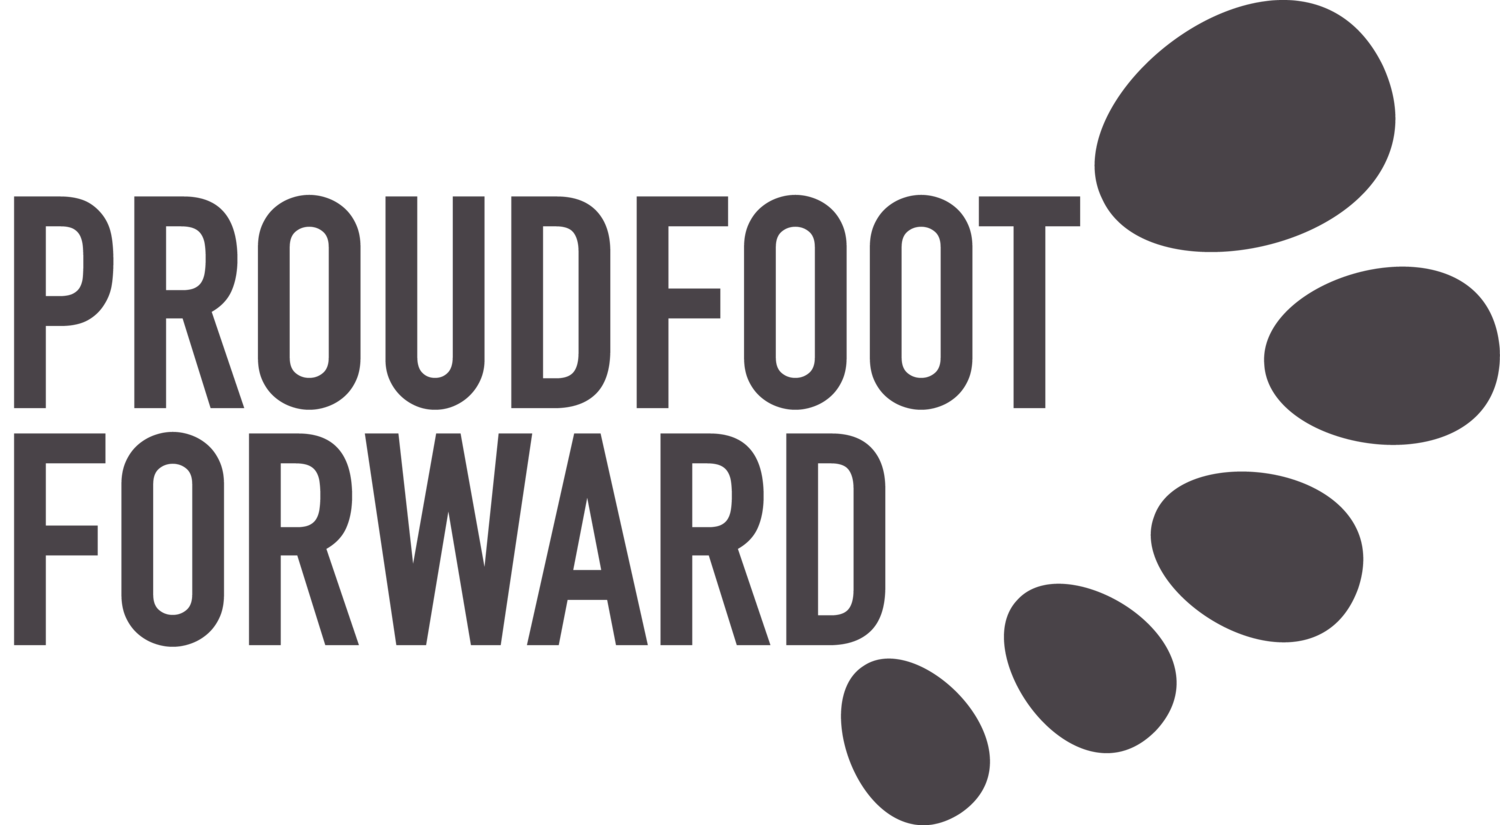 Proudfoot Forward